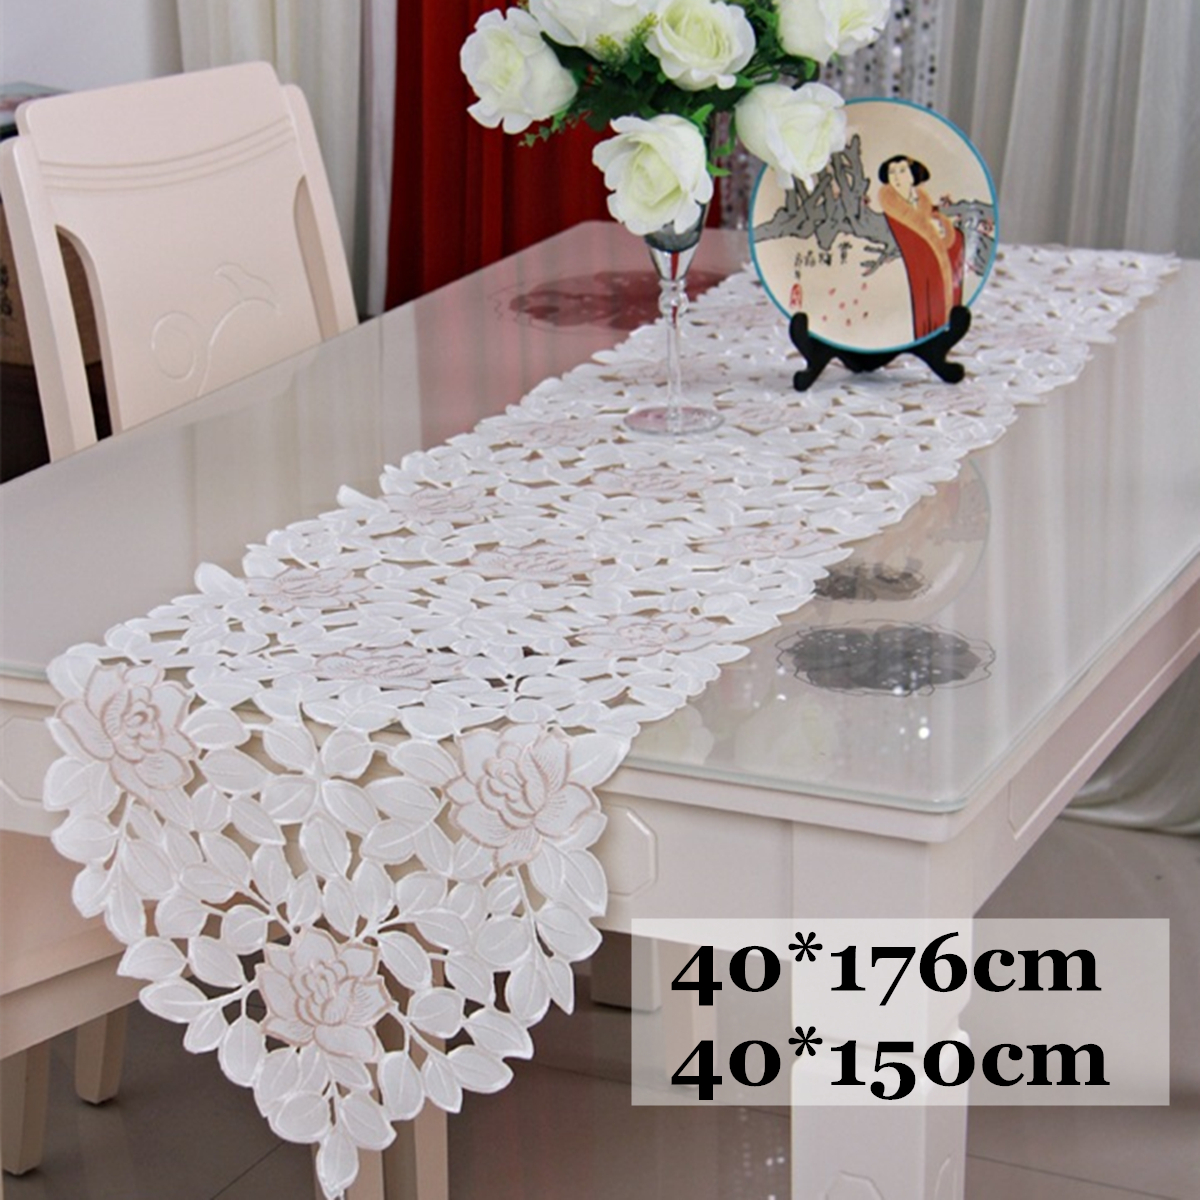 Dining Room Table Runner: 40*150/40*176 Cm Lace Flowers Table Runner Embroidered